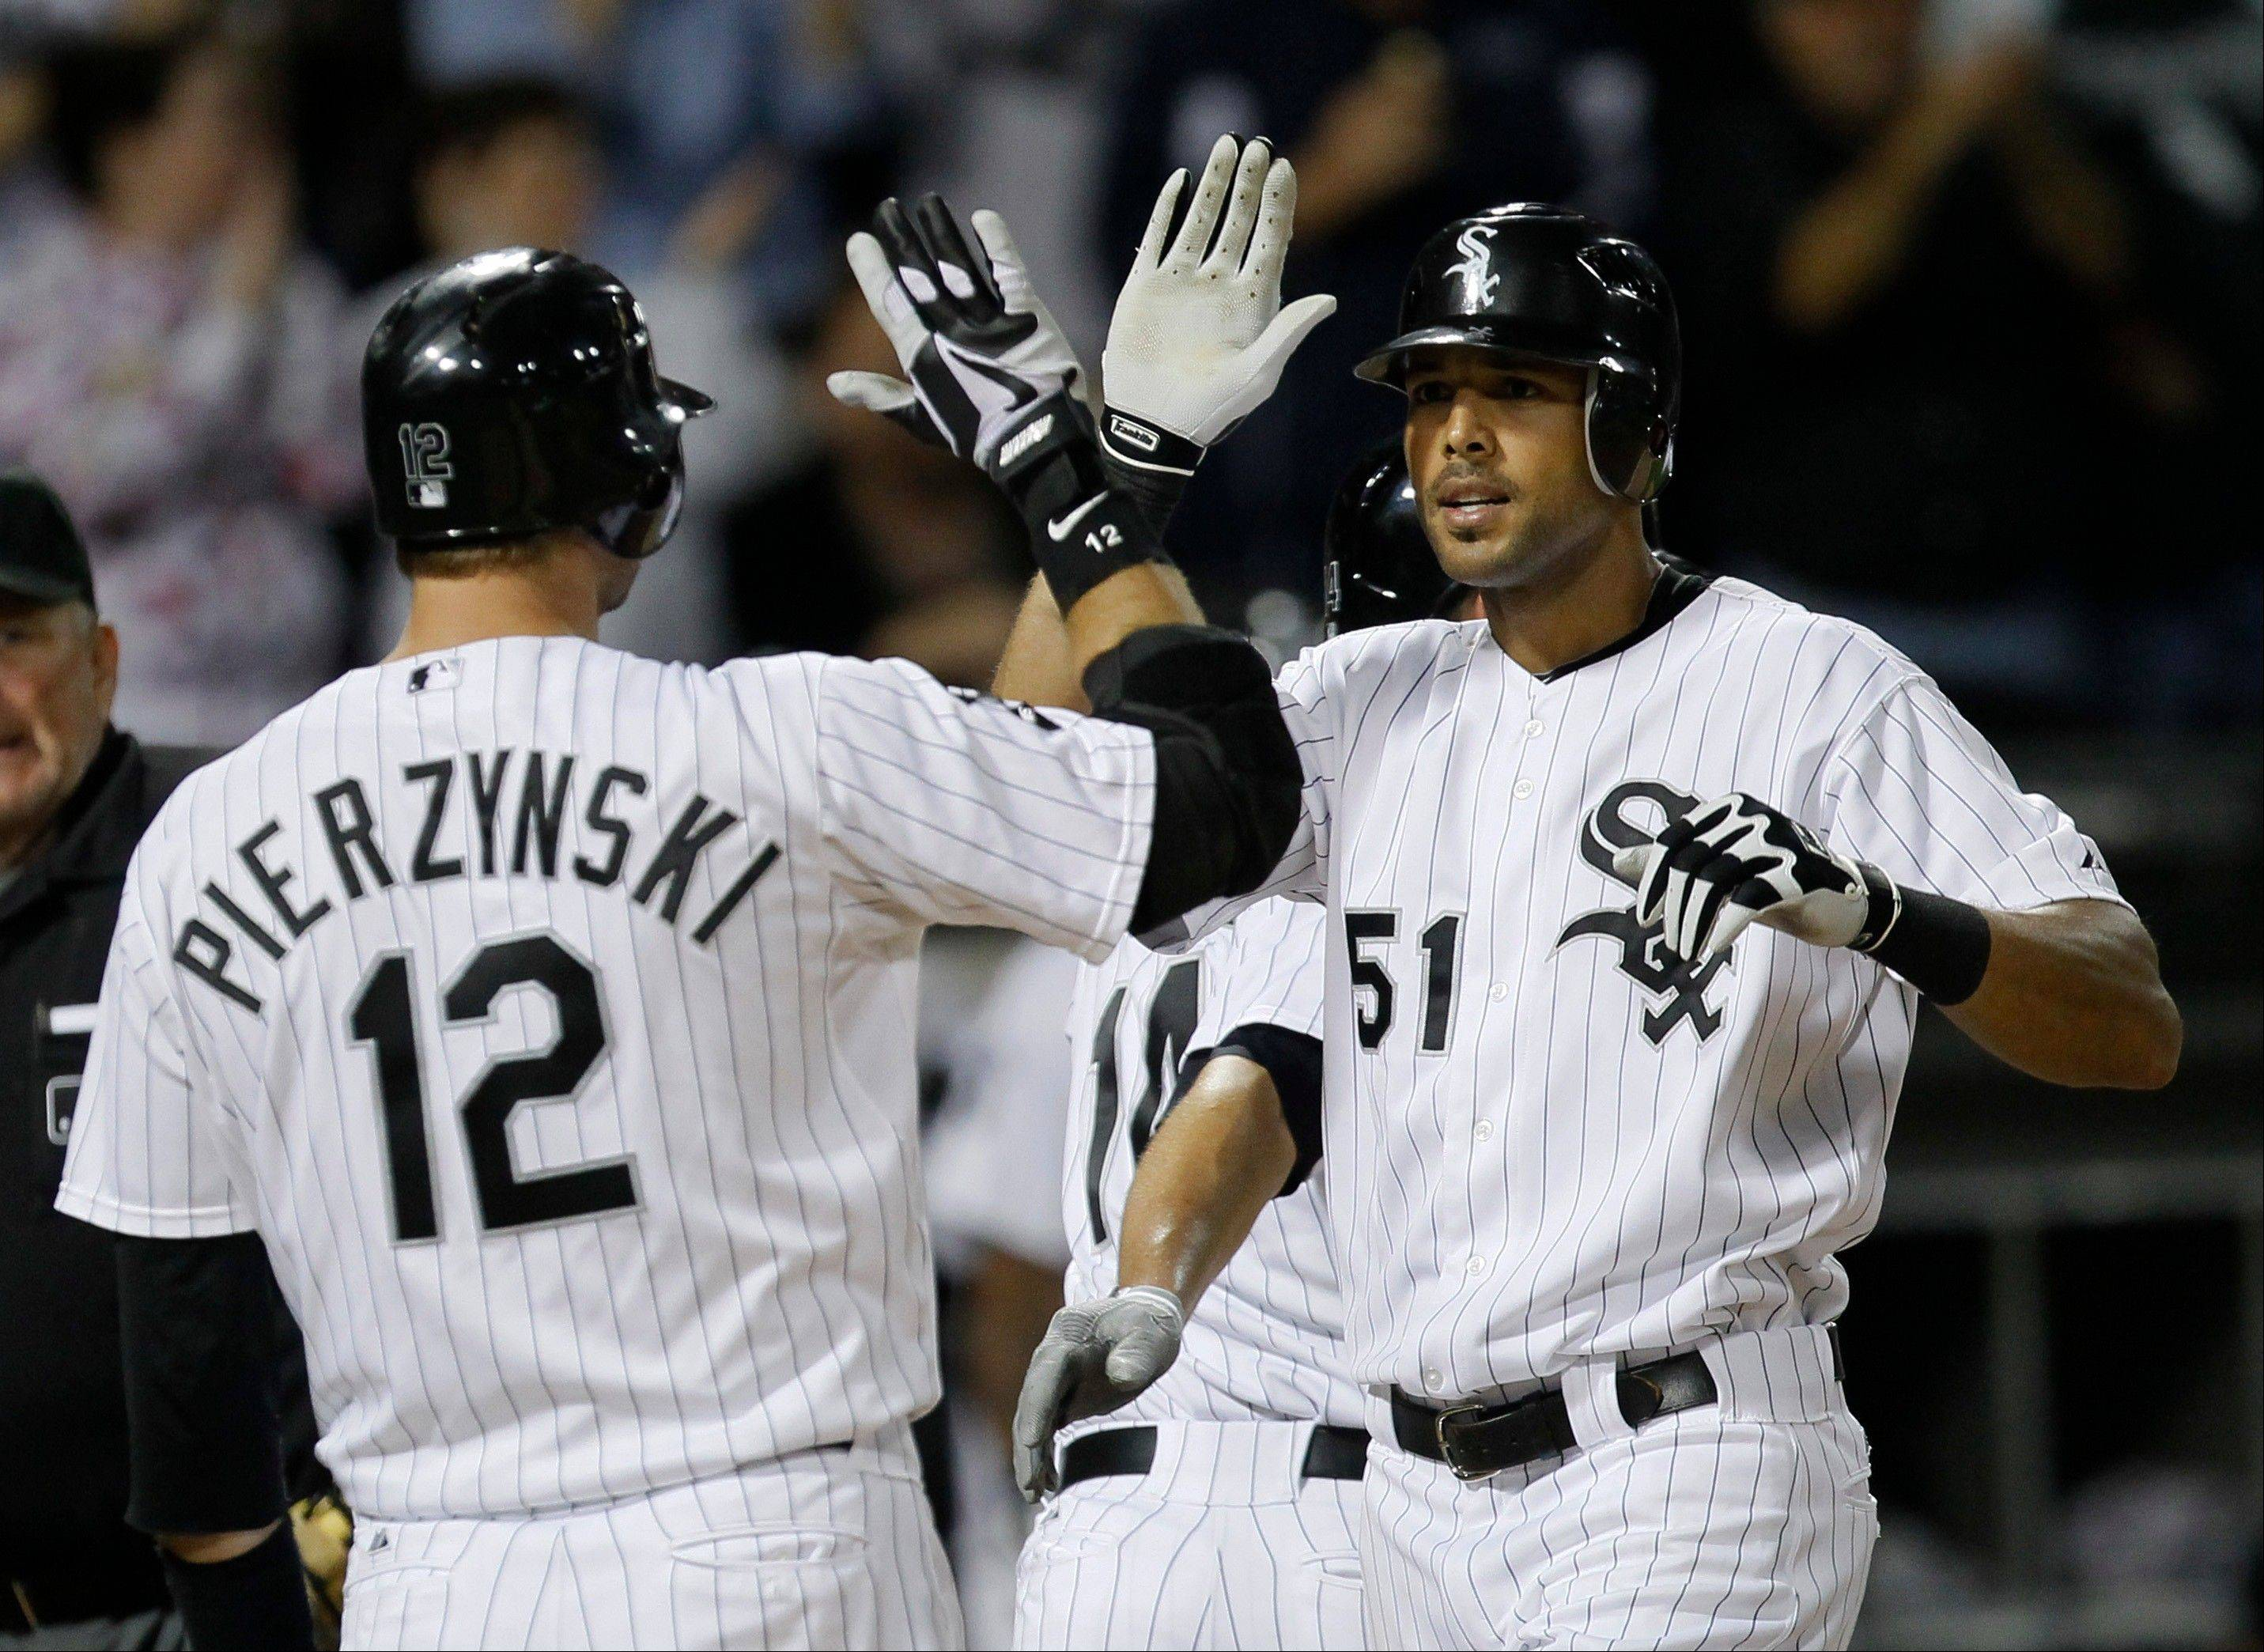 Alex Rios is greeted at home by A.J. Pierzynski after Rios hit a 3-run home run off Detroit Tigers starting pitcher Rick Porcello on Monday night. Dewayne Wise and Paul Konerko scored on the sixth-inning homer. Pierzynski followed with a solo shot.